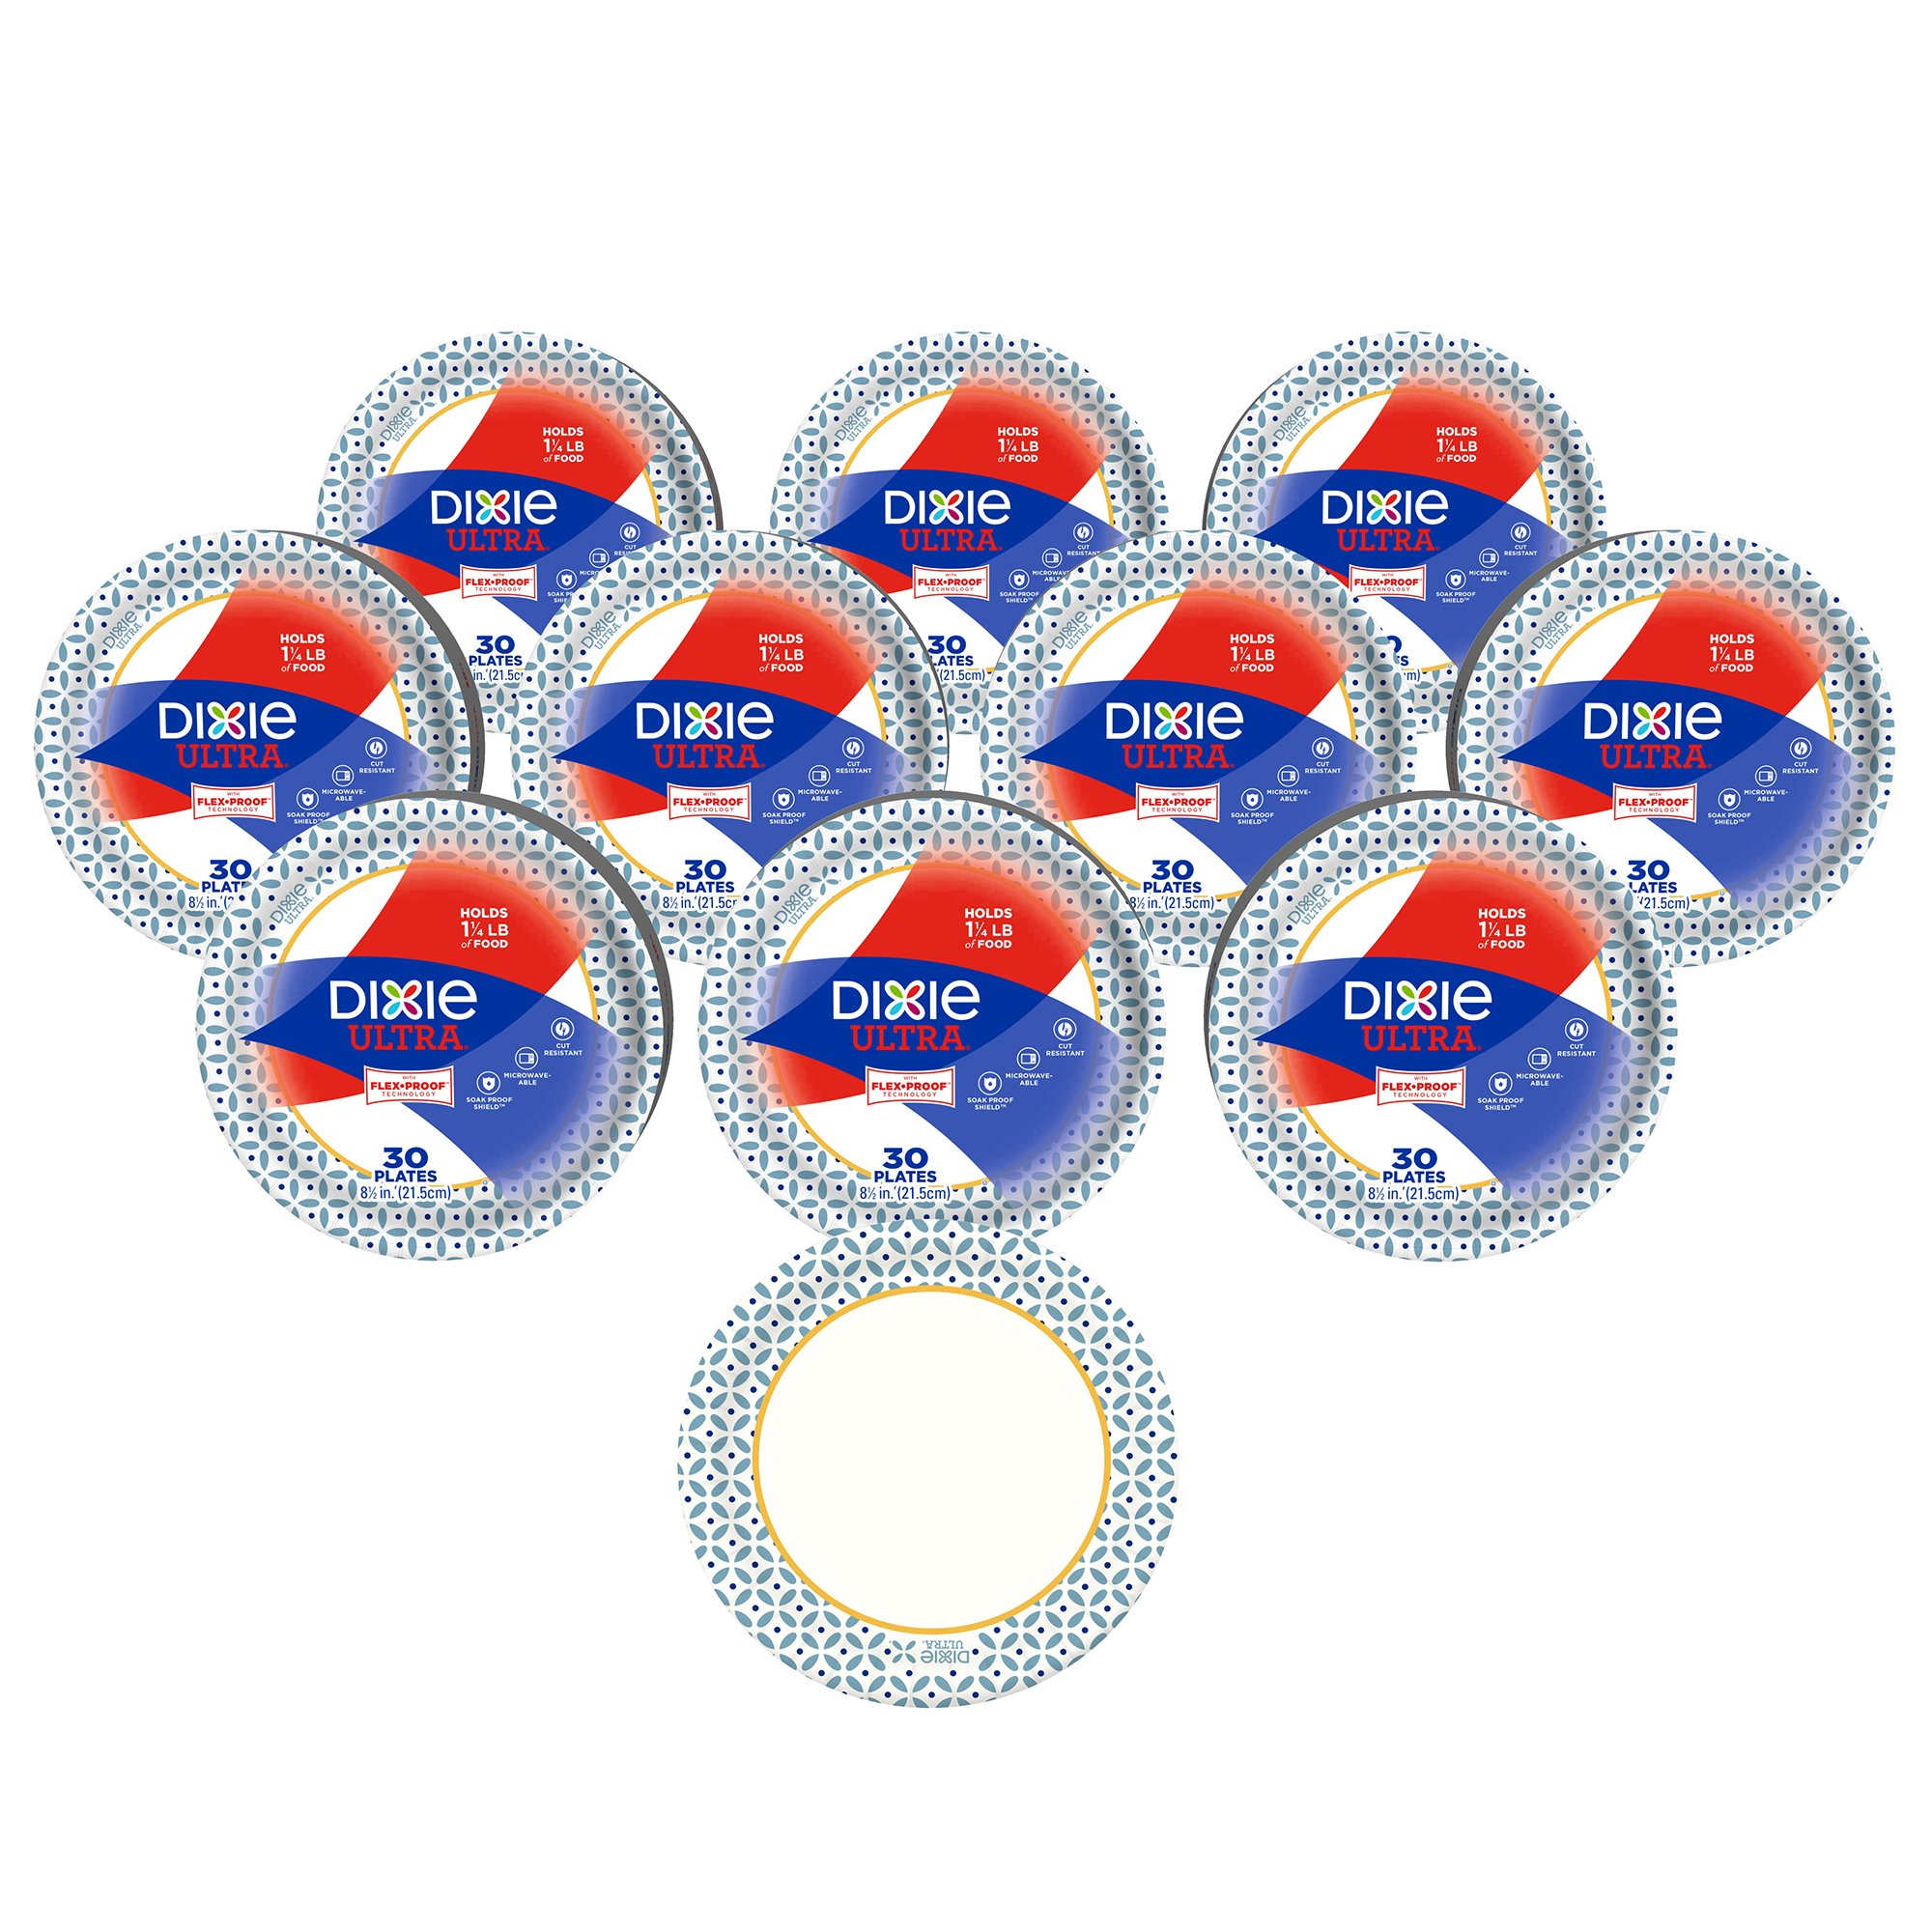 Dixie Ultra Paper Plates, 8 1/2'', 300 Count, 10 Packs of 30 Plates, Lunch or Light Dinner Size Printed Disposable Plates